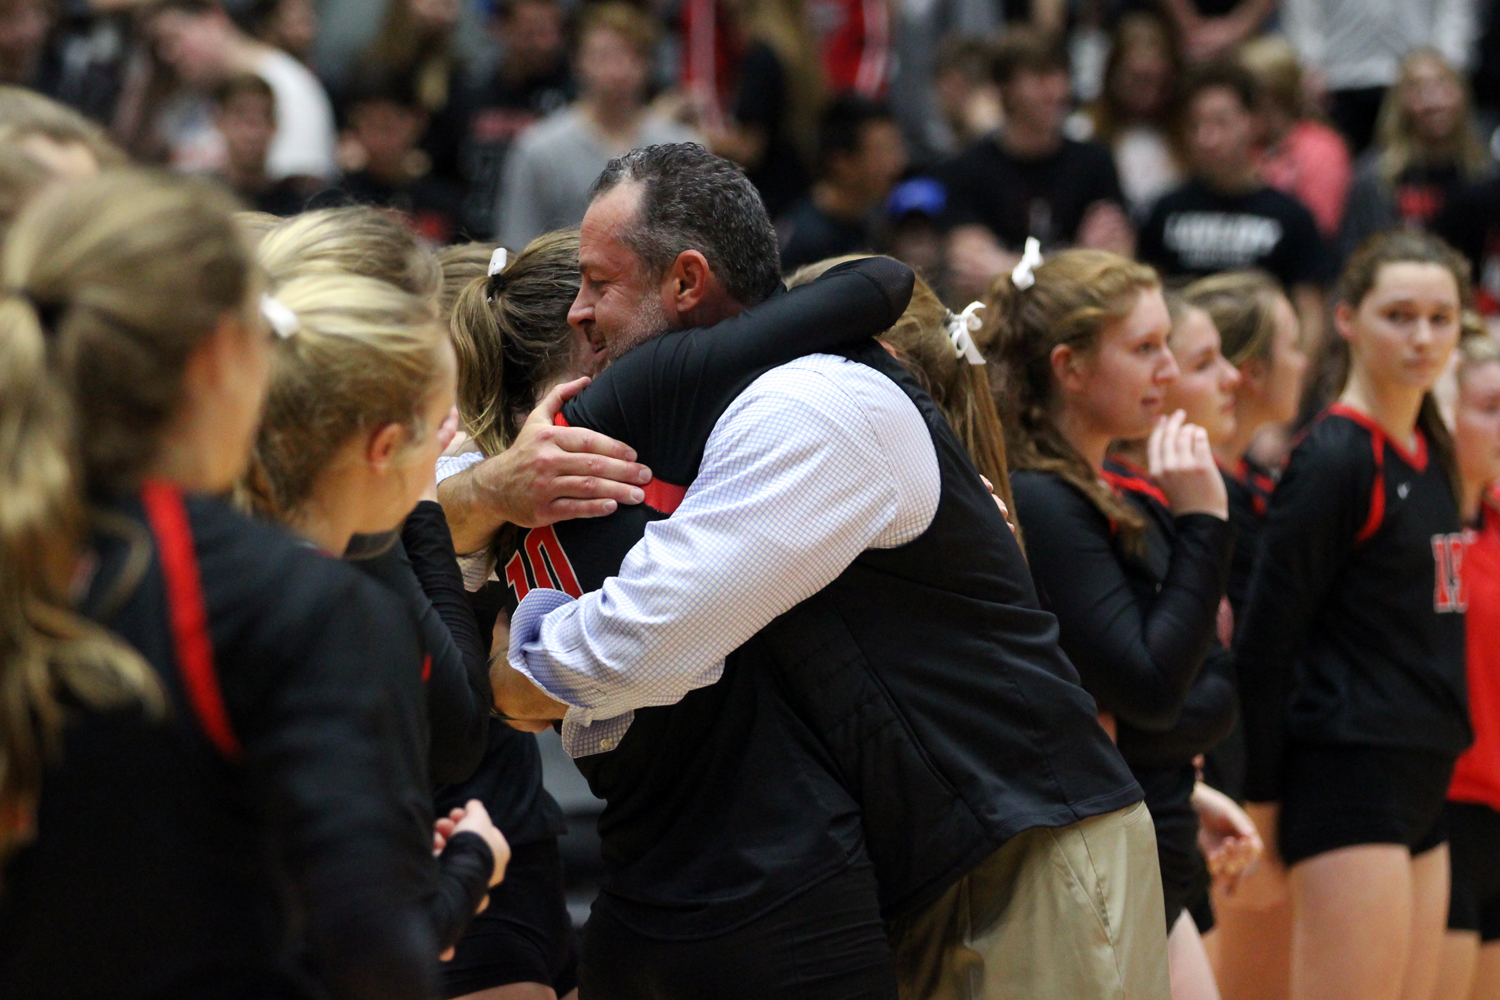 Head+coach+Jason+Nicholson+hugs+senior+Madison+Waters+as+the+team+lines+up+on+the+court+after+the+game.